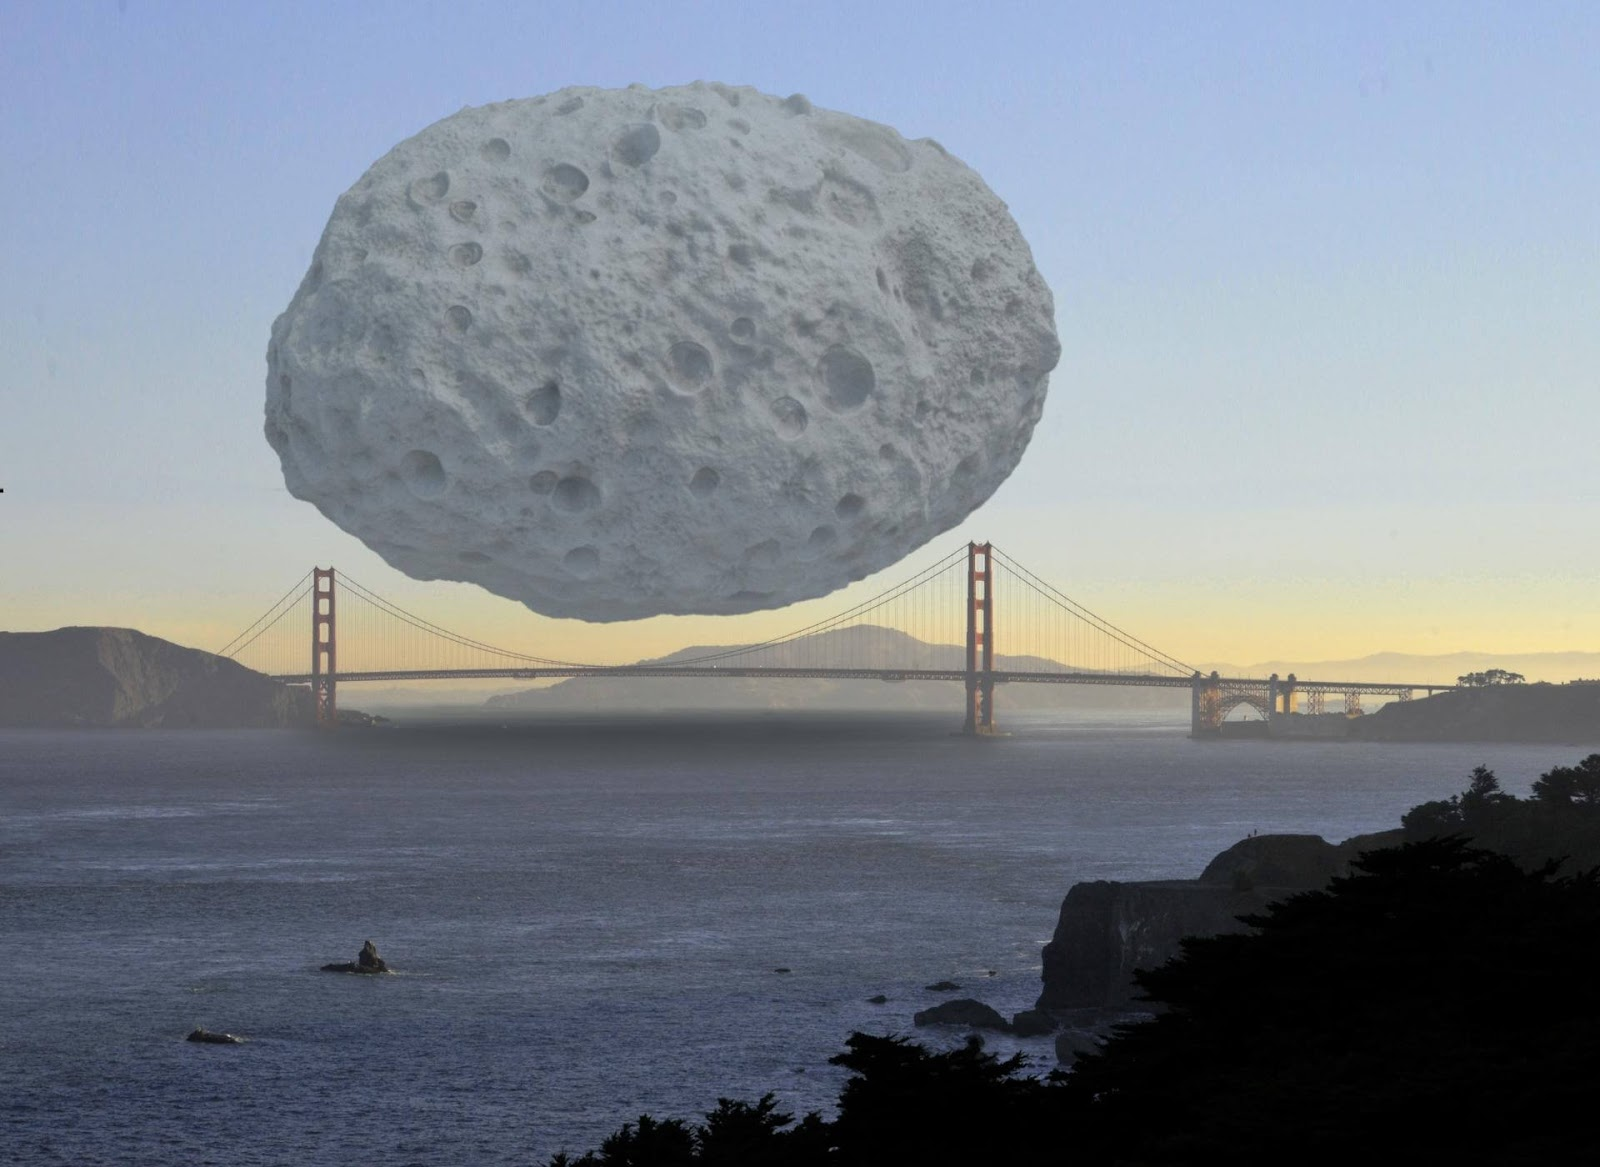 10 Incredible Pictures Prove That Some Things Are Truly Enormous - The 2.6 Trillion Dollar Rock